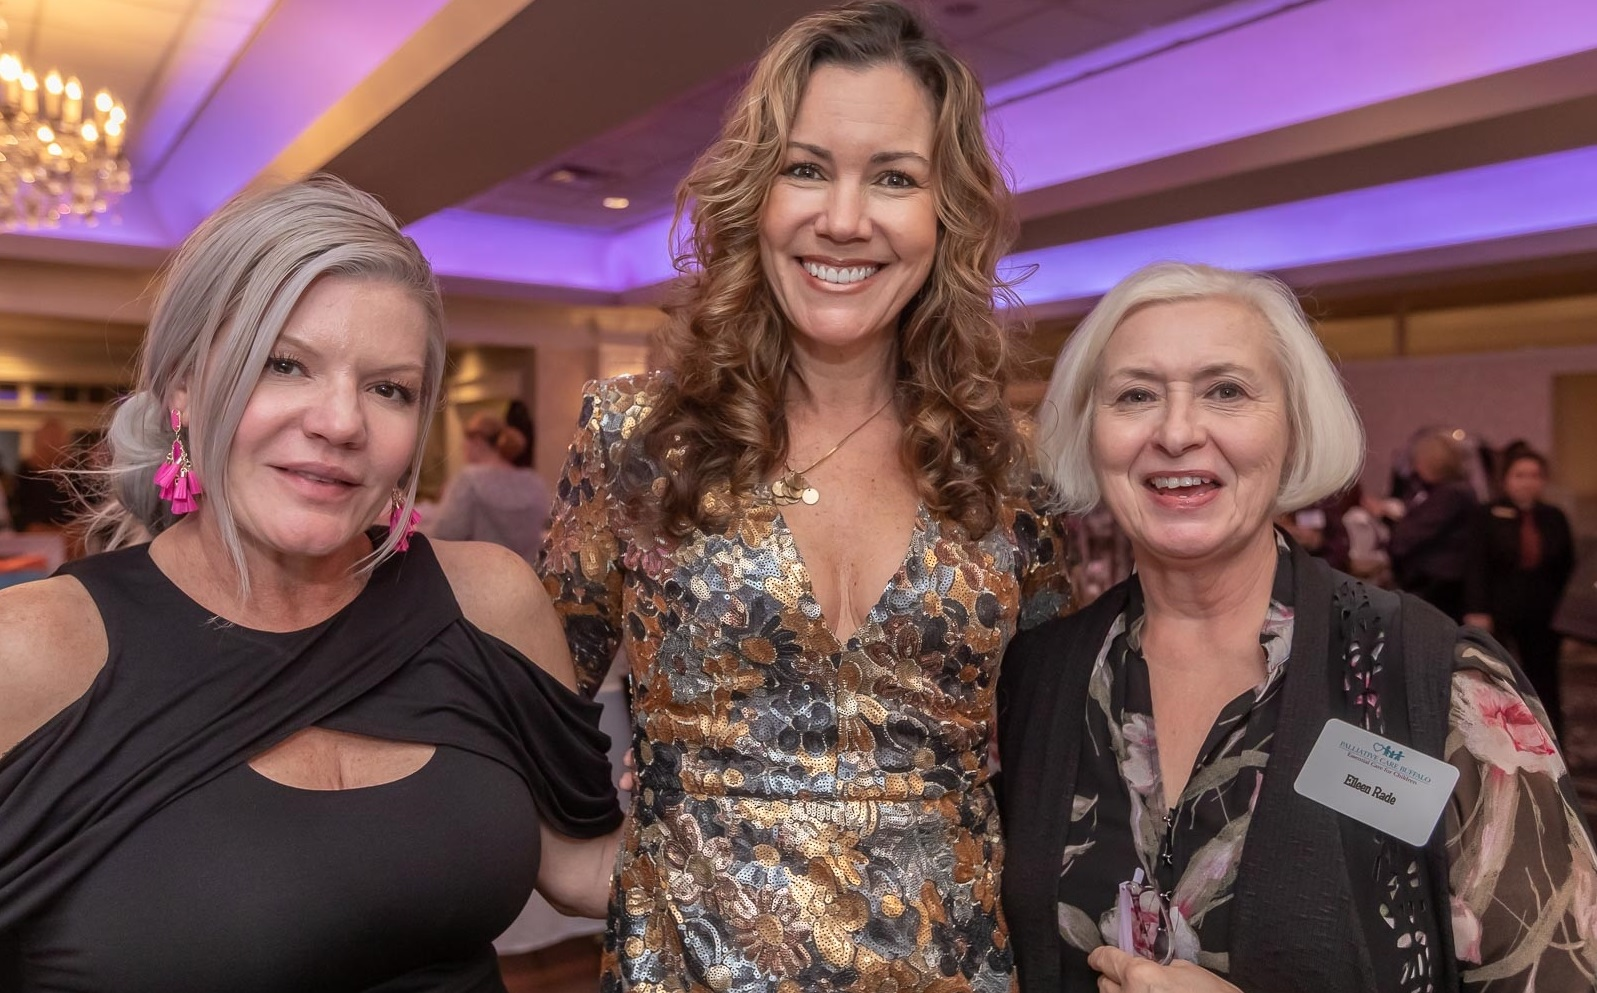 A Hospice Buffalo fundraiser - Bubbles and Bags - ran on Wednesday, Nov. 14, 2018, in Orchard Park Country Club. Guests perused holiday gifts from local vendors and enjoyed one complimentary drink with admission. See who supported the cause.